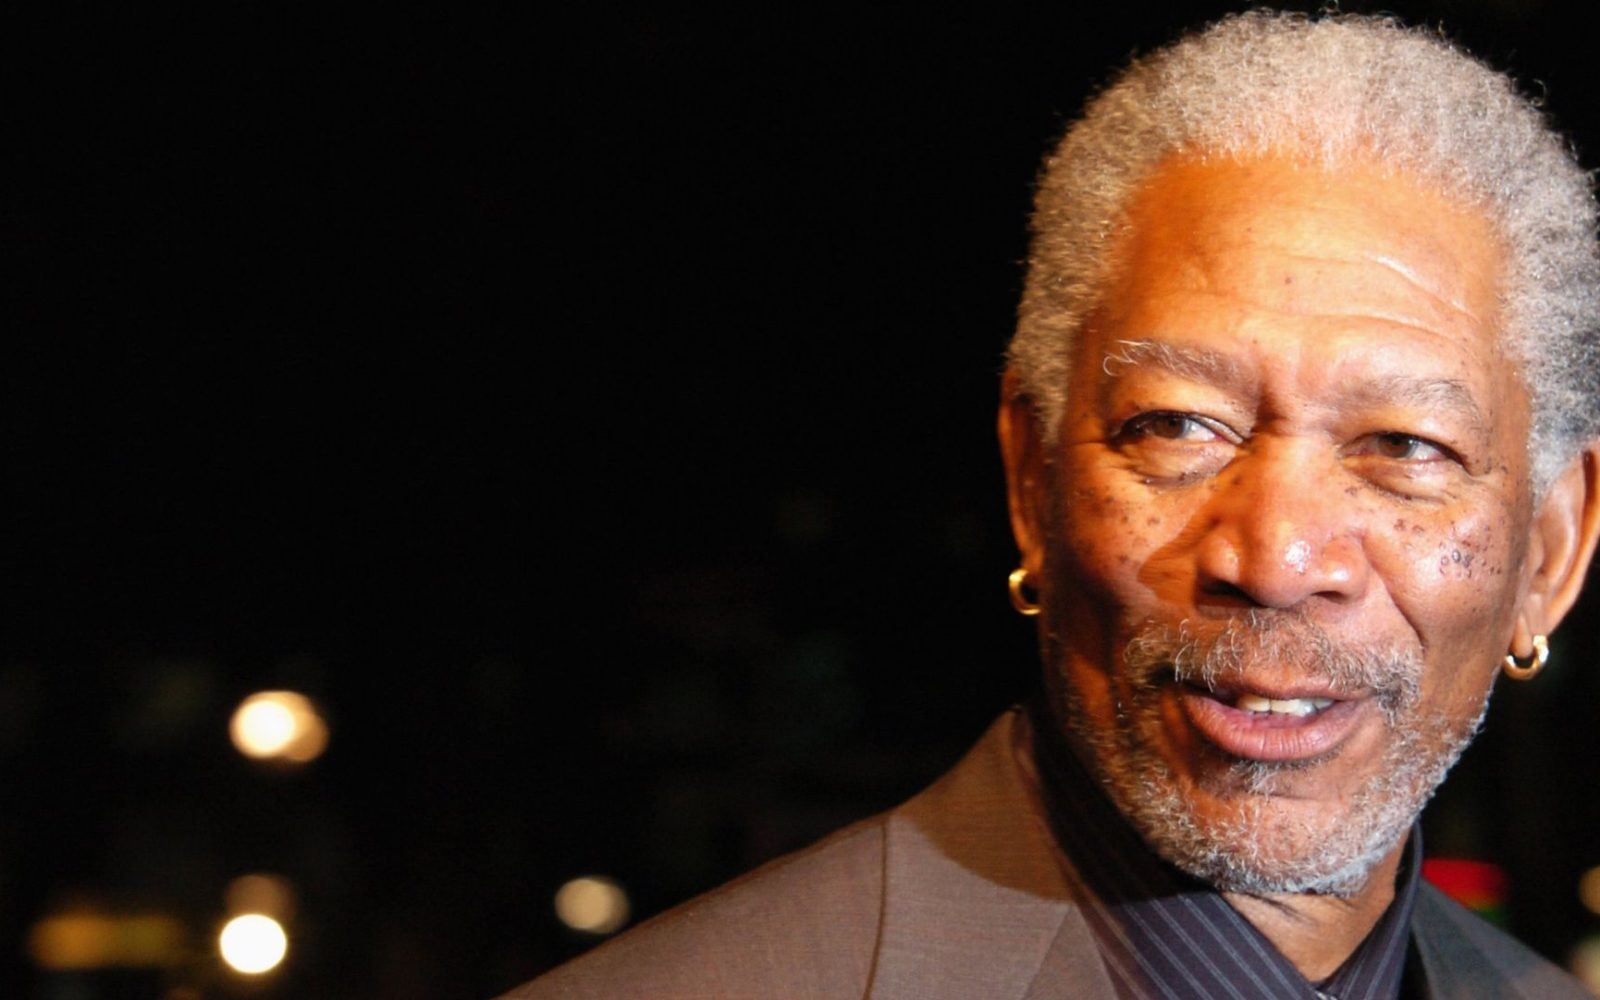 For a limited time, Morgan Freeman's voice can help you